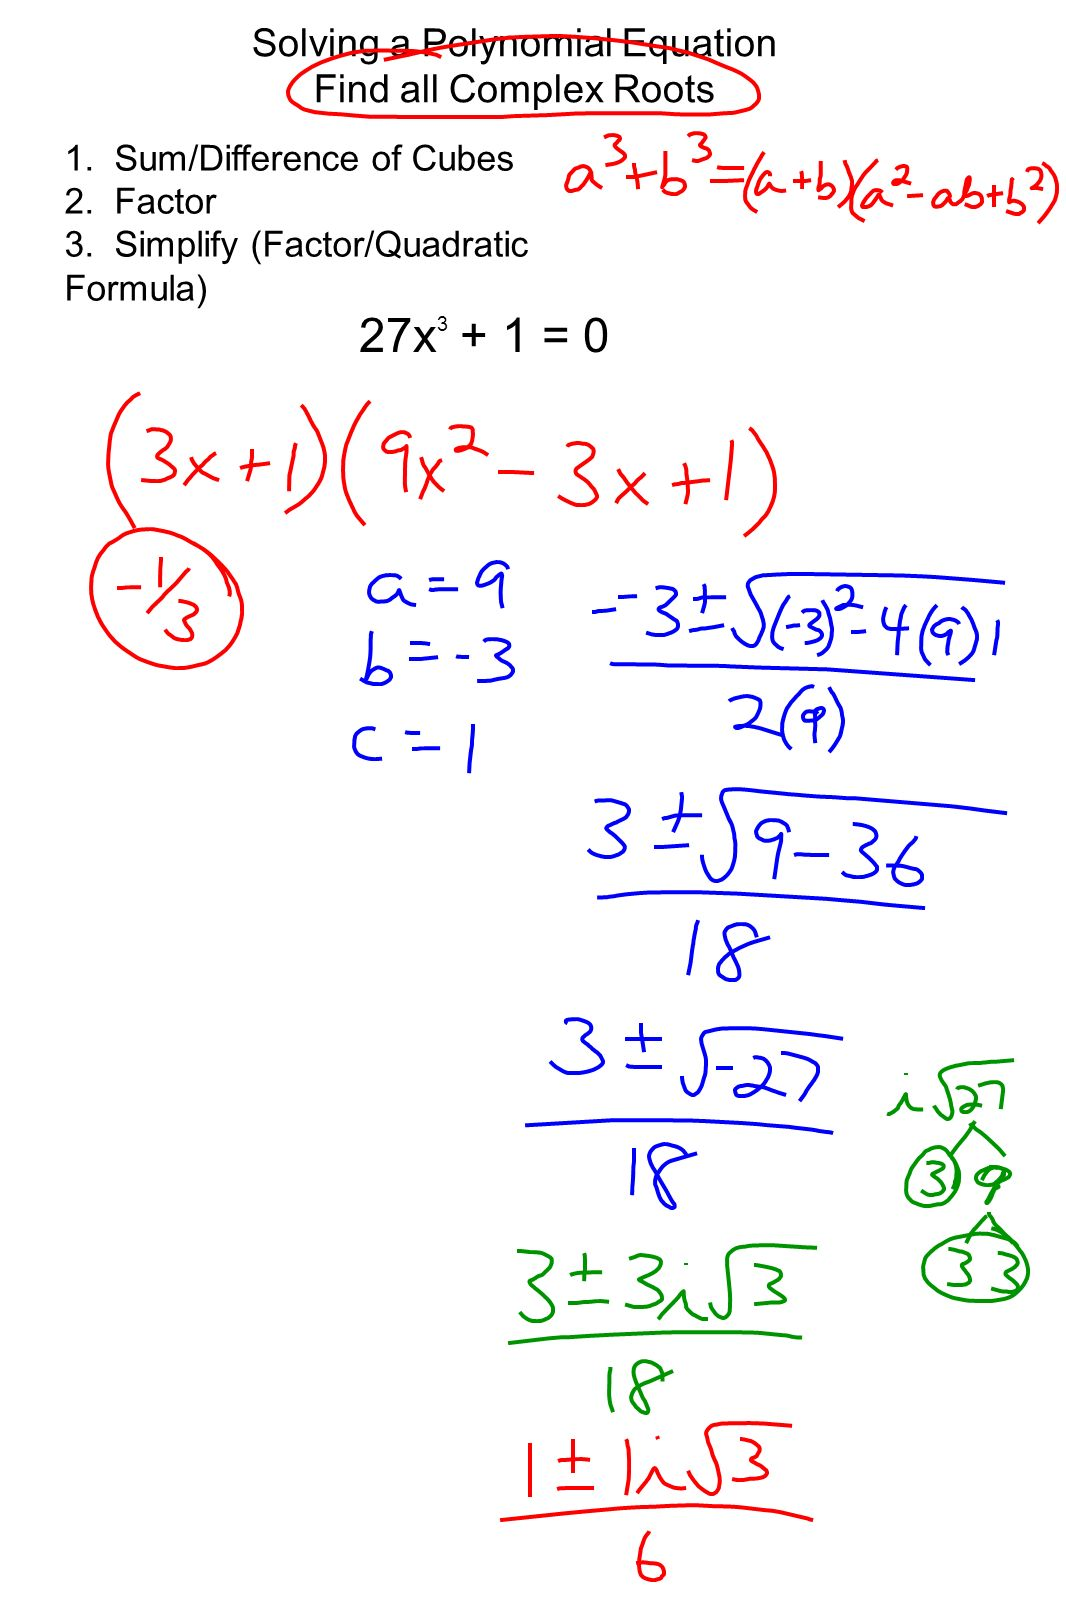 Solving Polynomial Equations By Factoring Worksheet With Answers